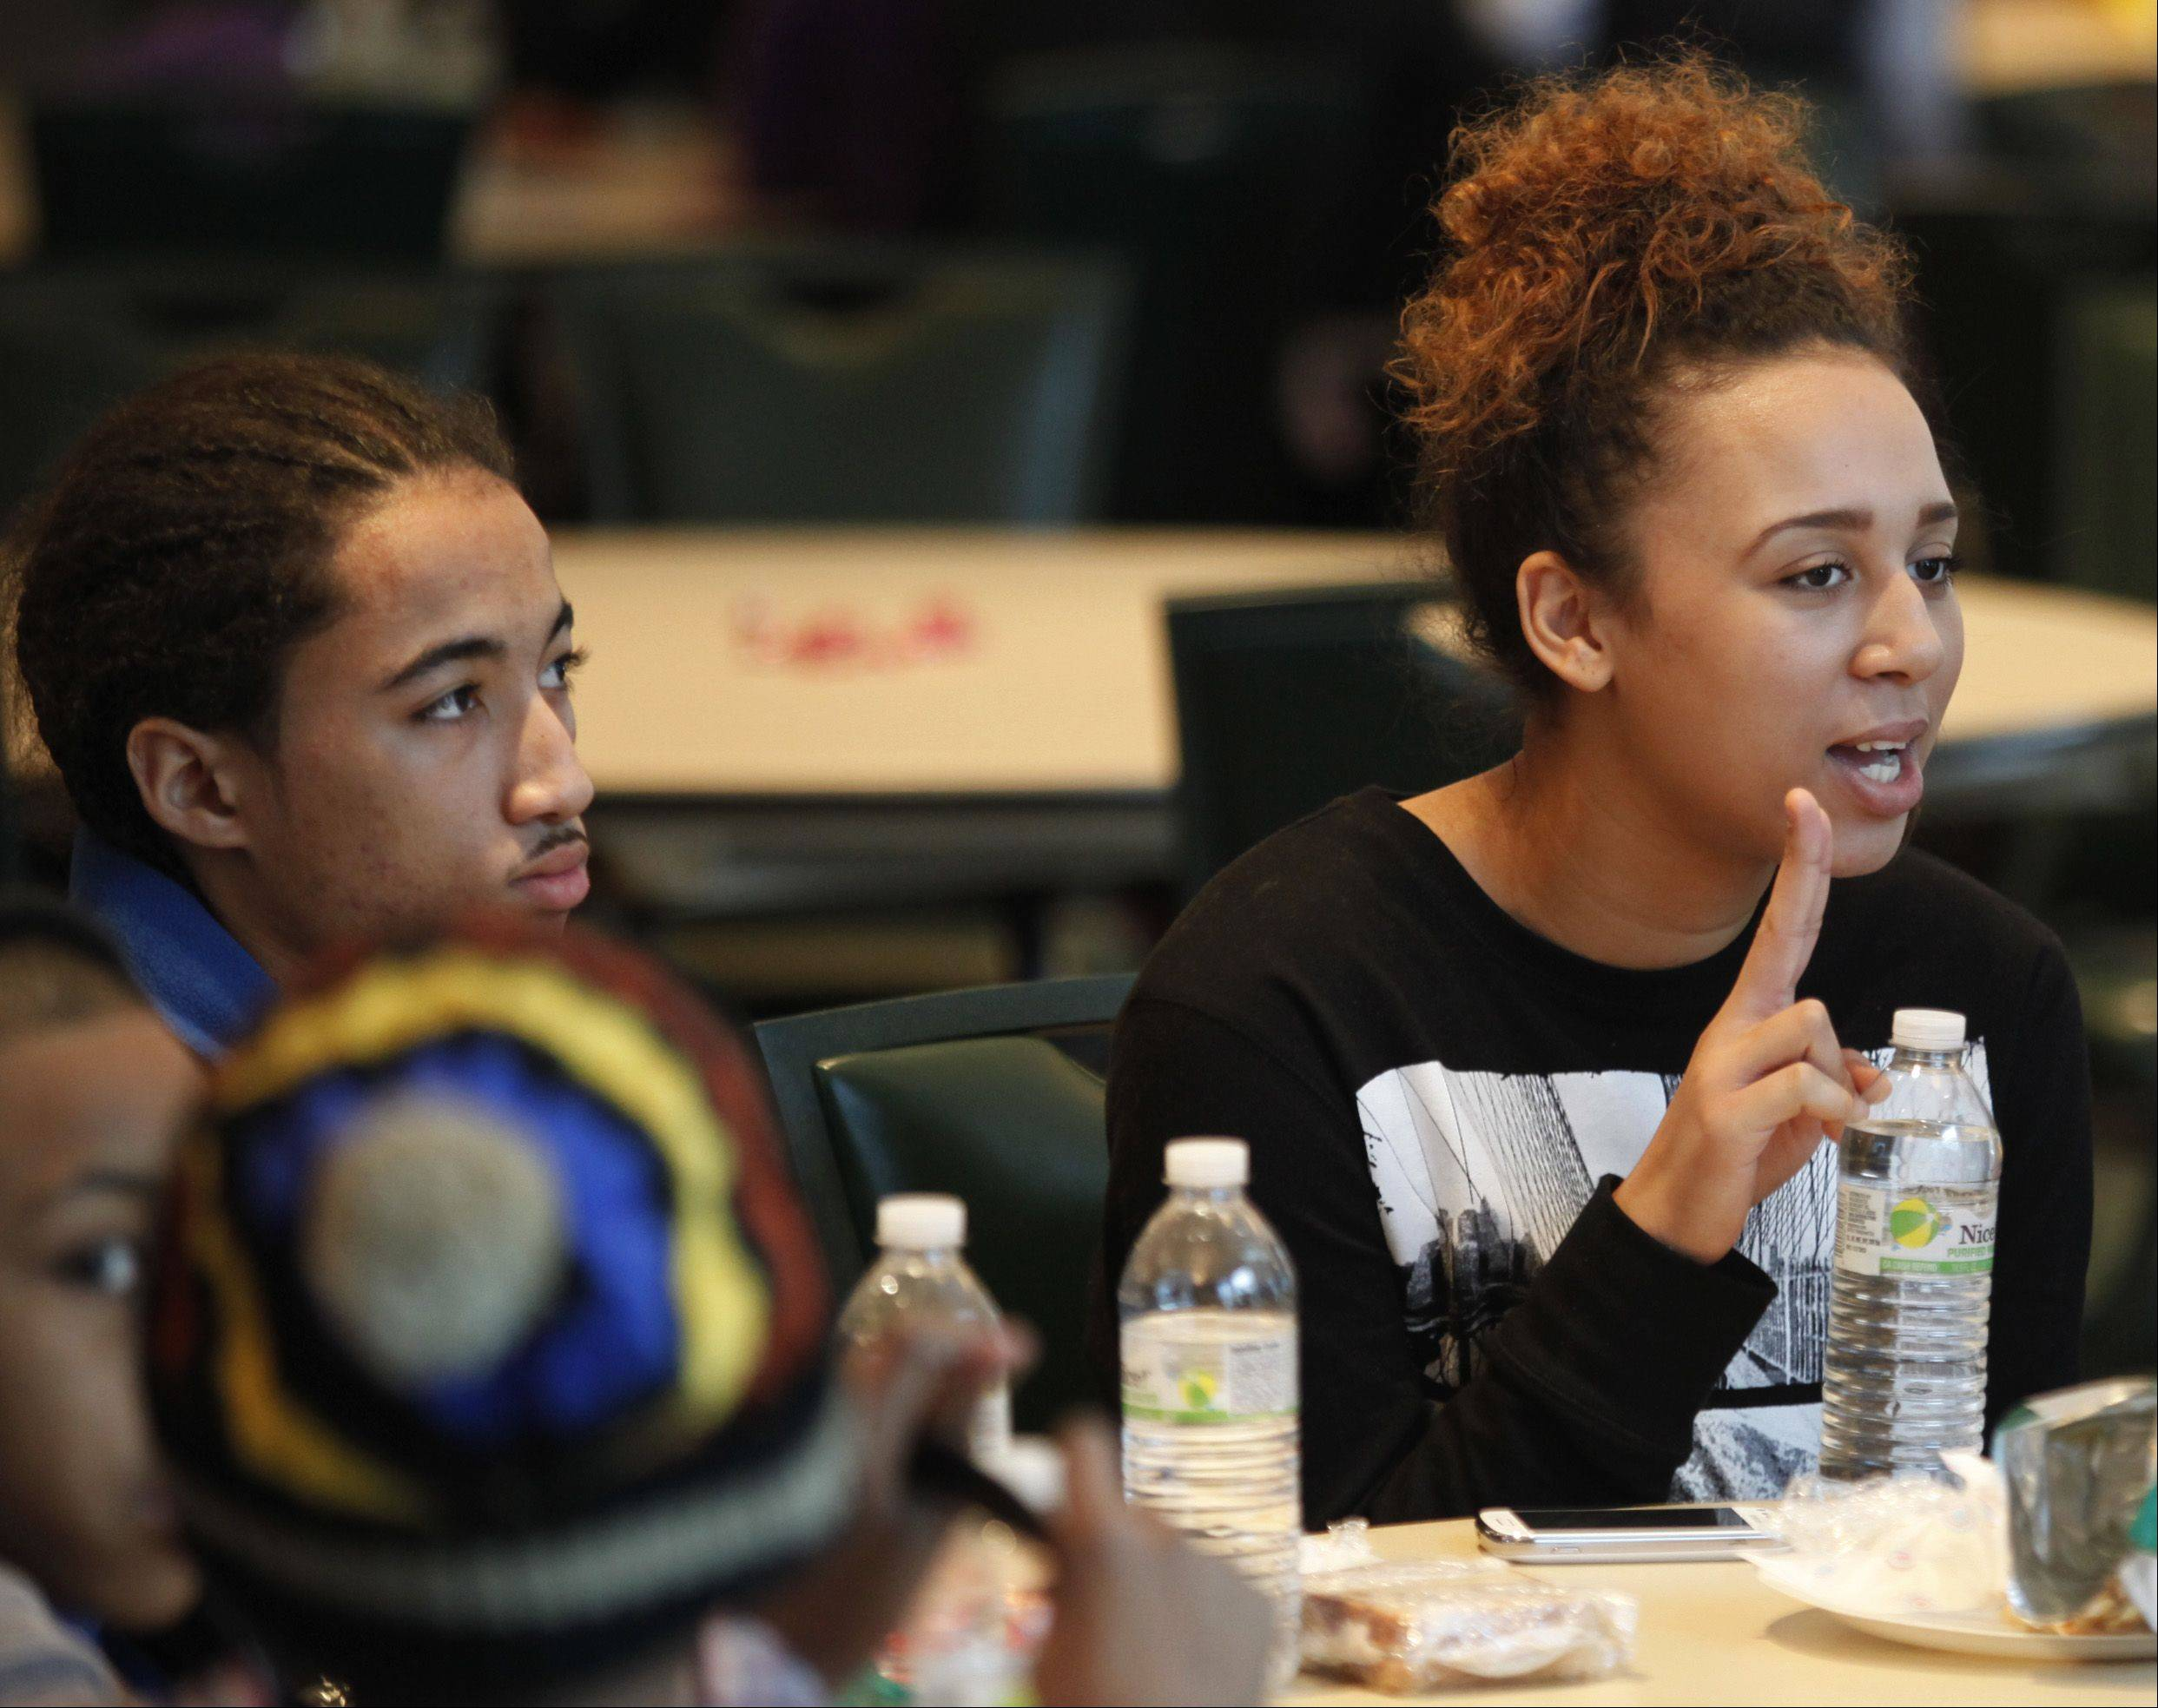 Gina Clements, of Elgin, right, answers a question during a table discussion about Martin Luther King, Jr. Monday with other members of the Living Gospel Youth Group, including her brother Chevelle, at left. Dozens of youth from local schools, churches and other civic groups attended a luncheon Monday afternoon in the Heritage Ballroom at The Centre of Elgin, the culmination of their volunteer work during the Day of Service event to honor the legacy of the civil rights leader.